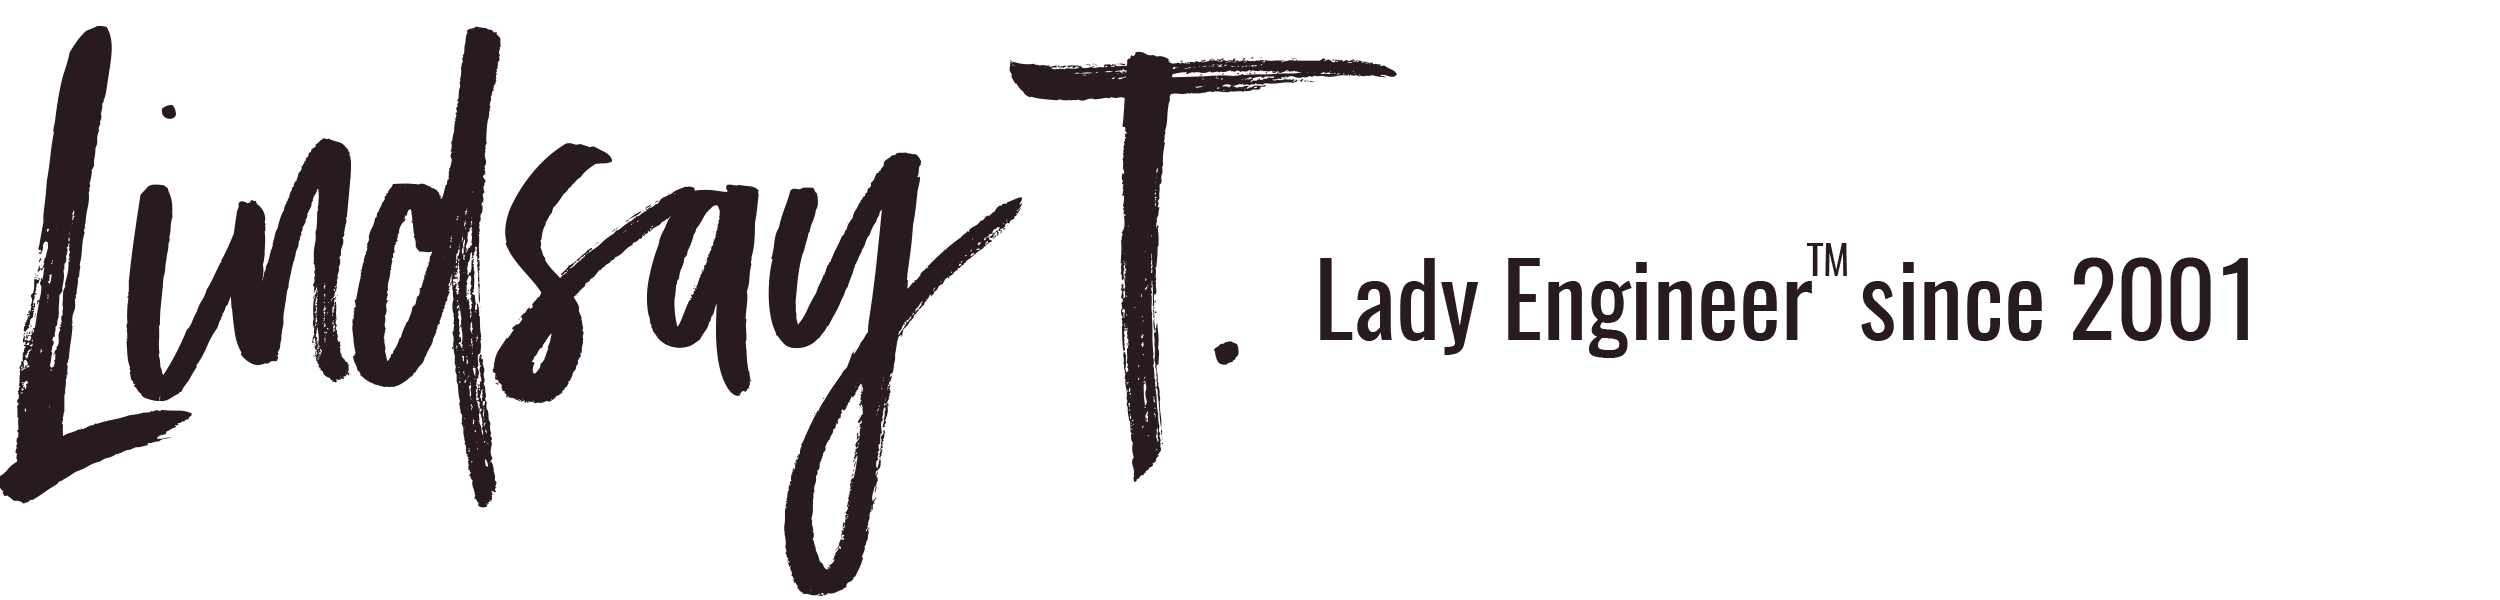 Lindsay Tabas: What the Lady Engineer Knows